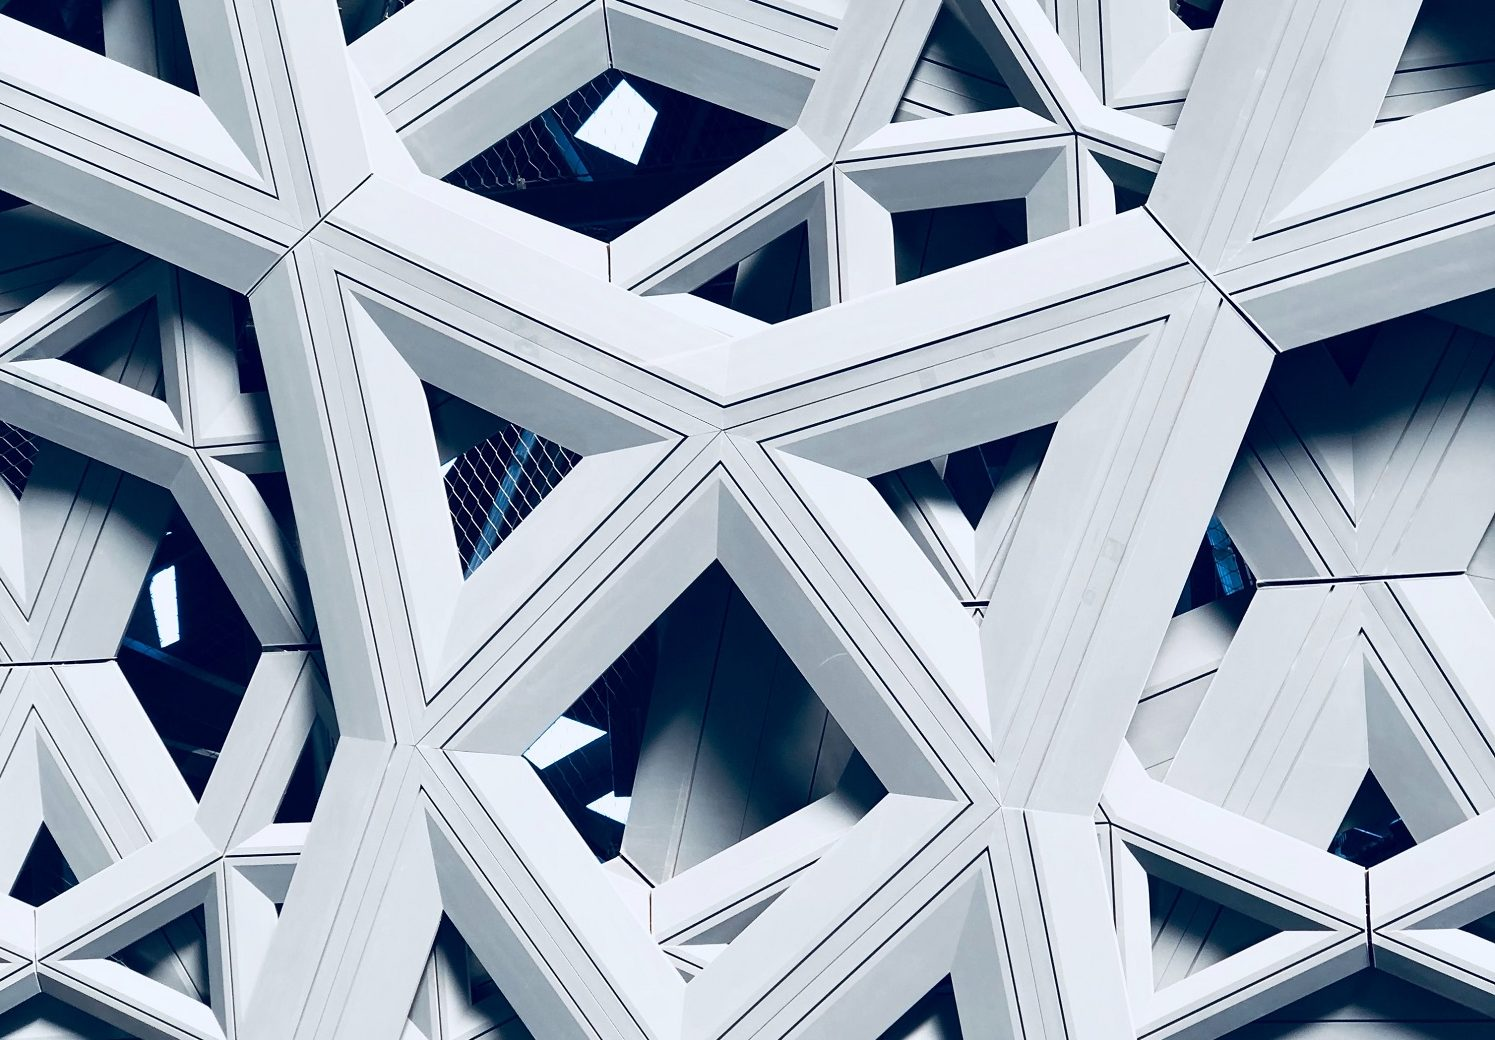 View of a portion of the Louvre Abu Dhabi with intricate interwoven structures and windows framed within.